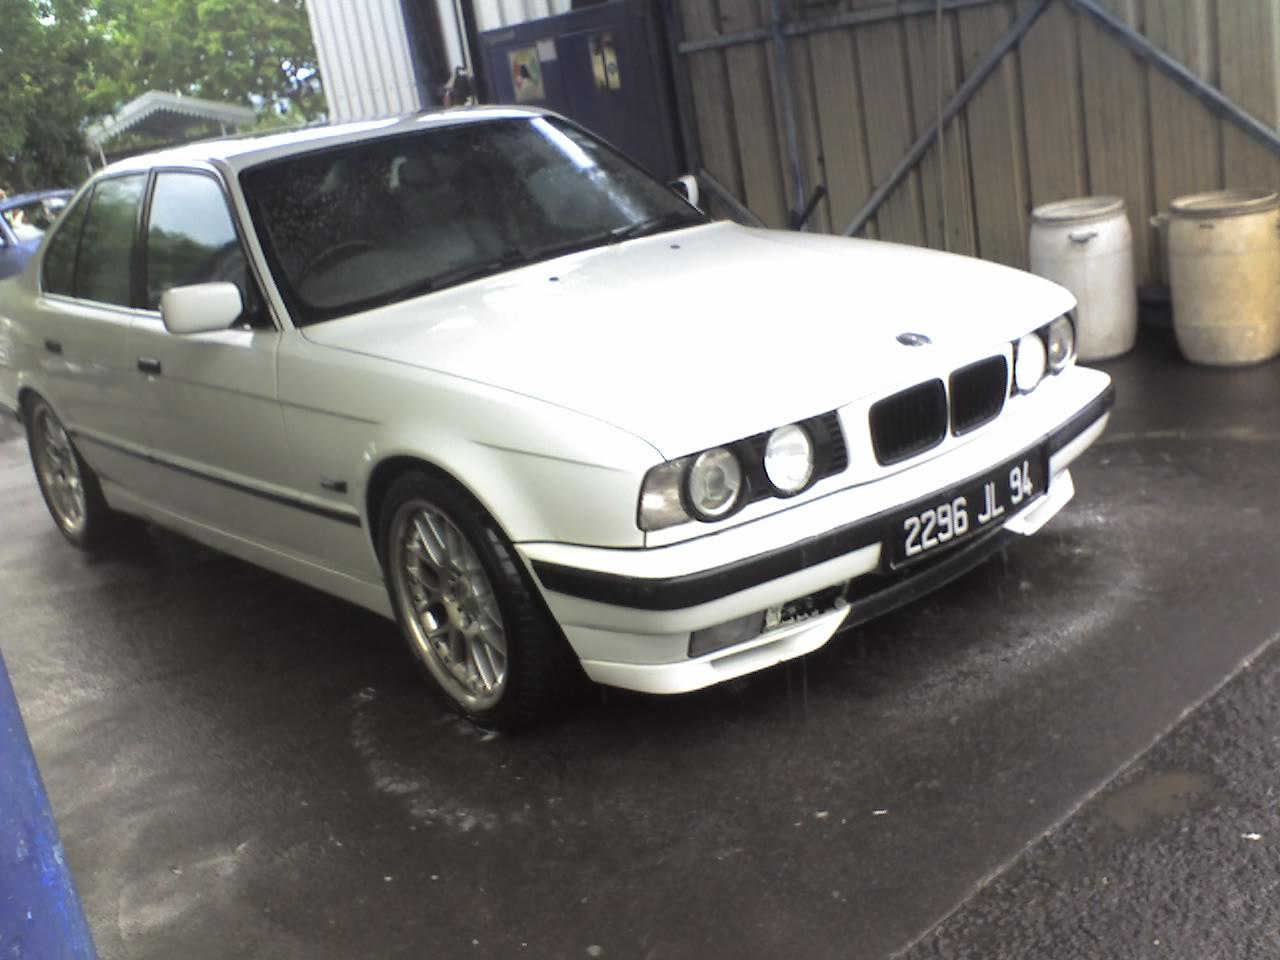 Reekesh's 1994 BMW 5 Series